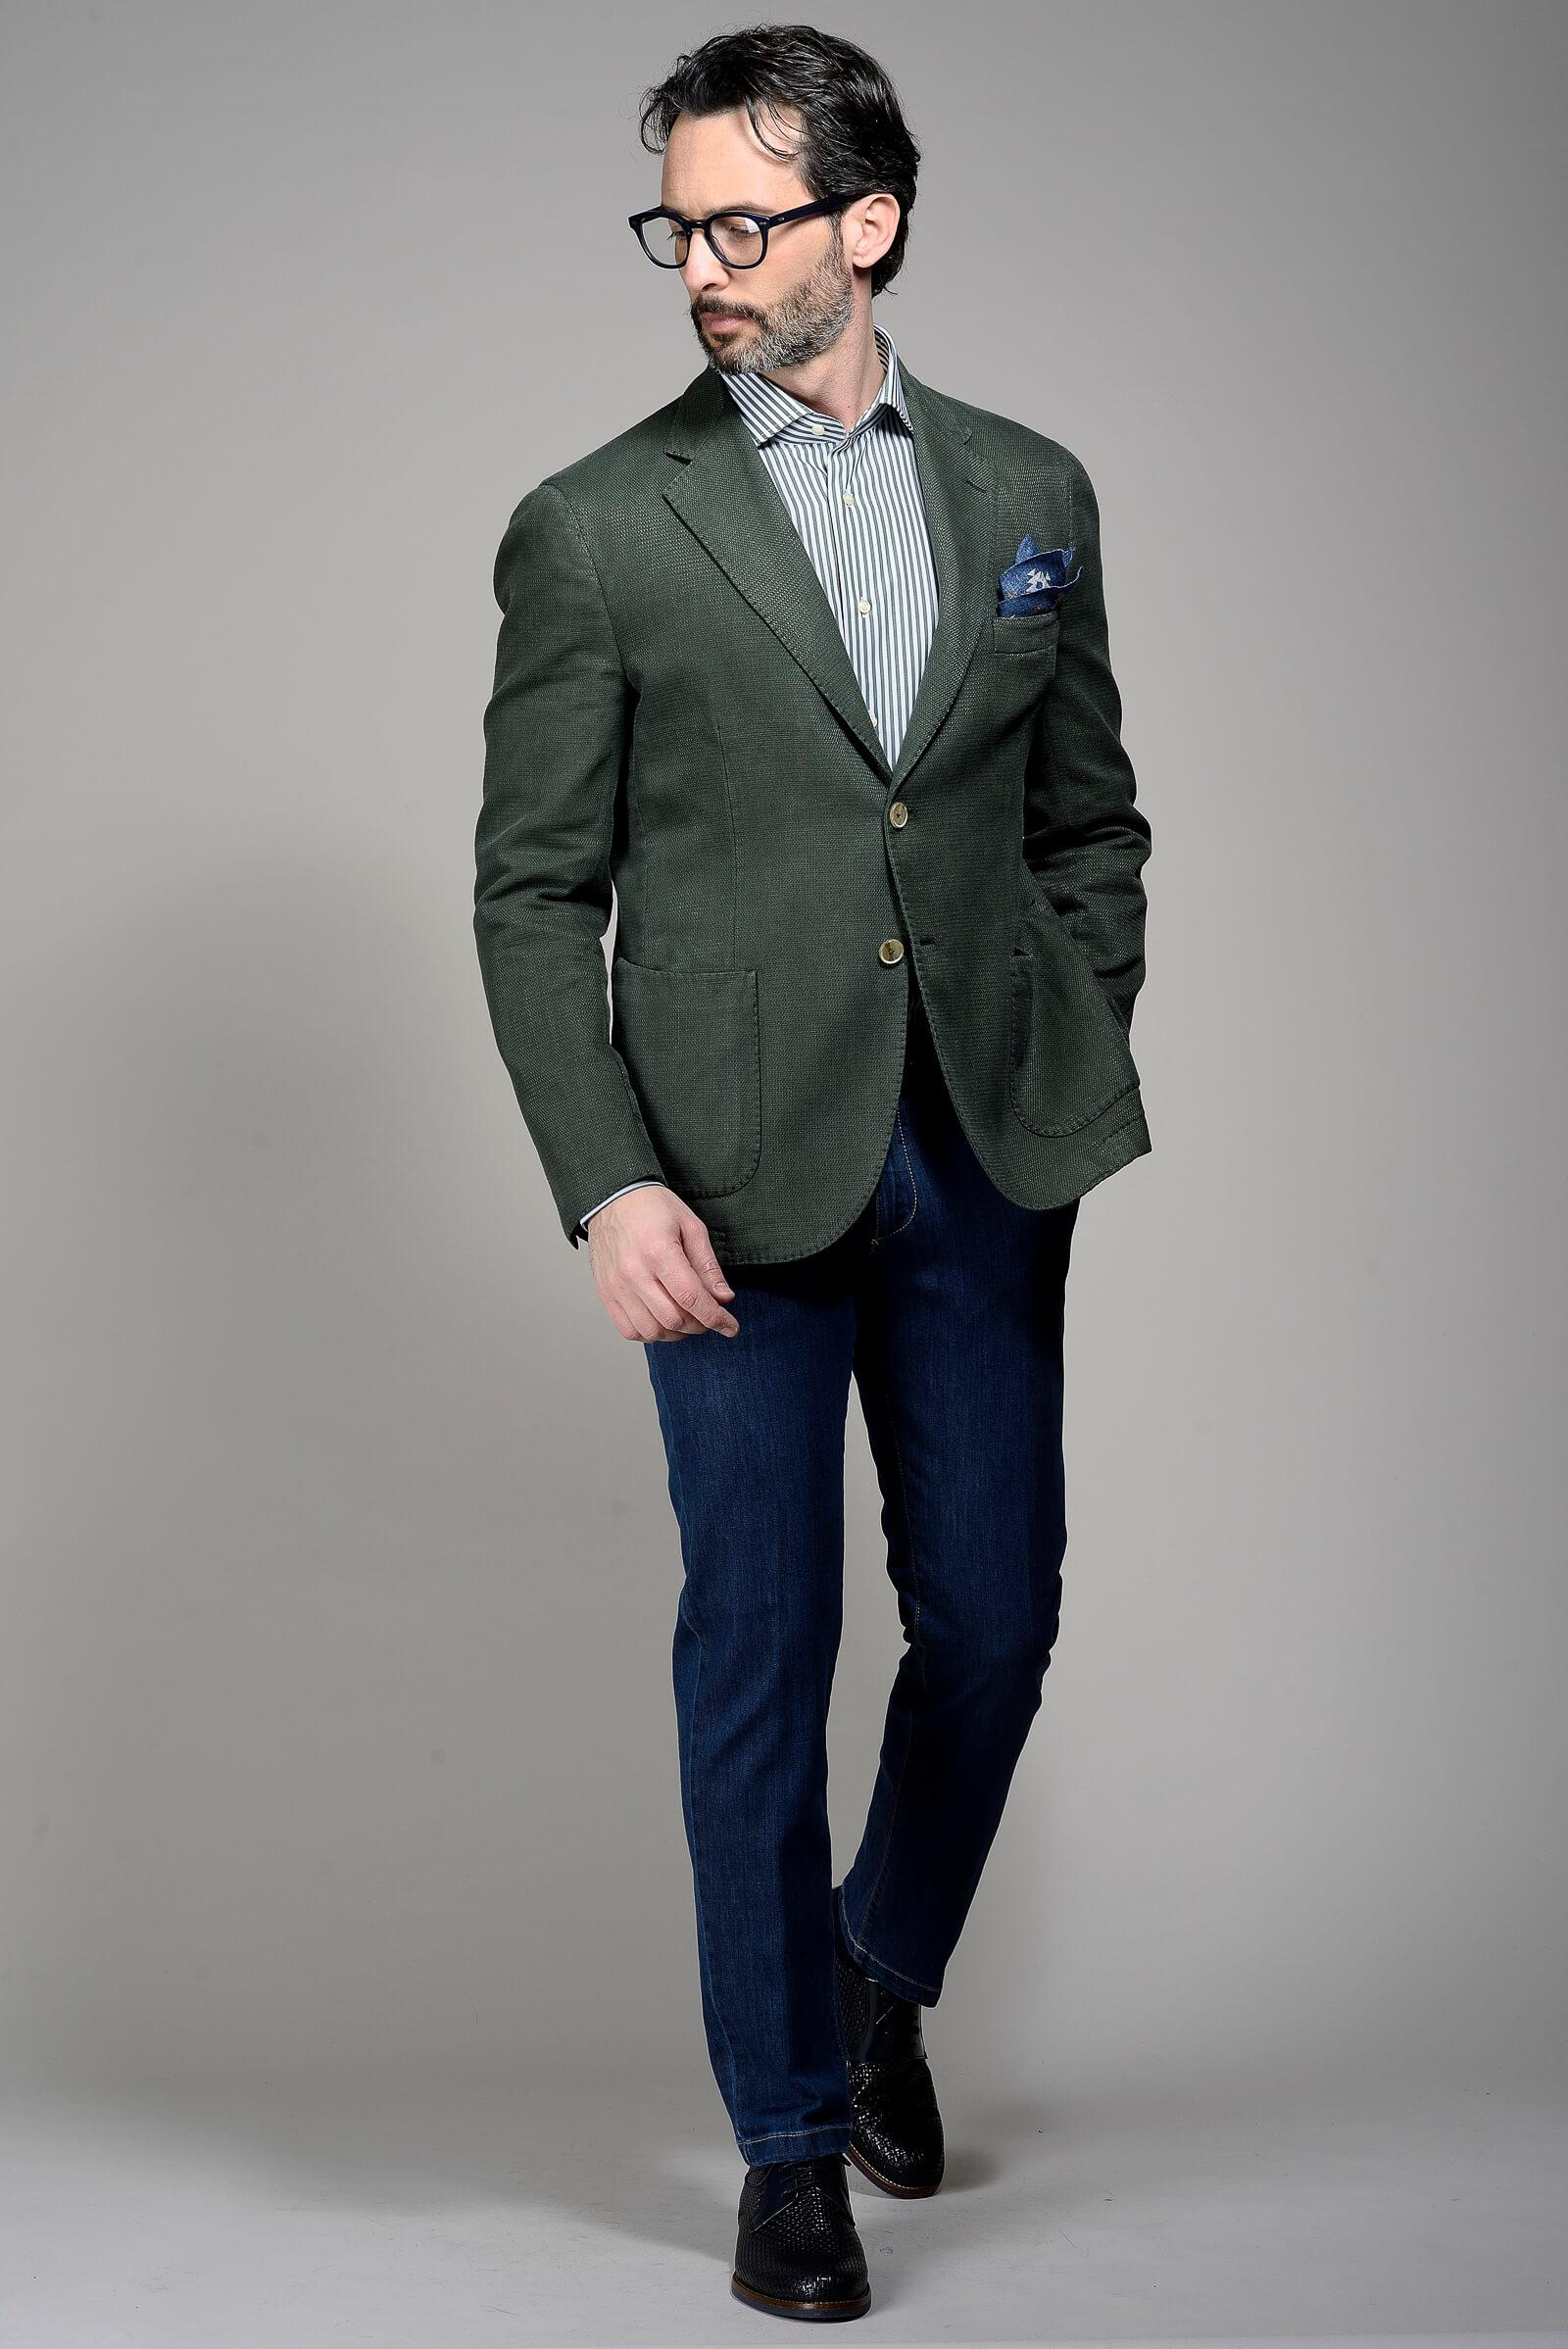 TOTAL LOOK JACKET AND JEANS Angelico